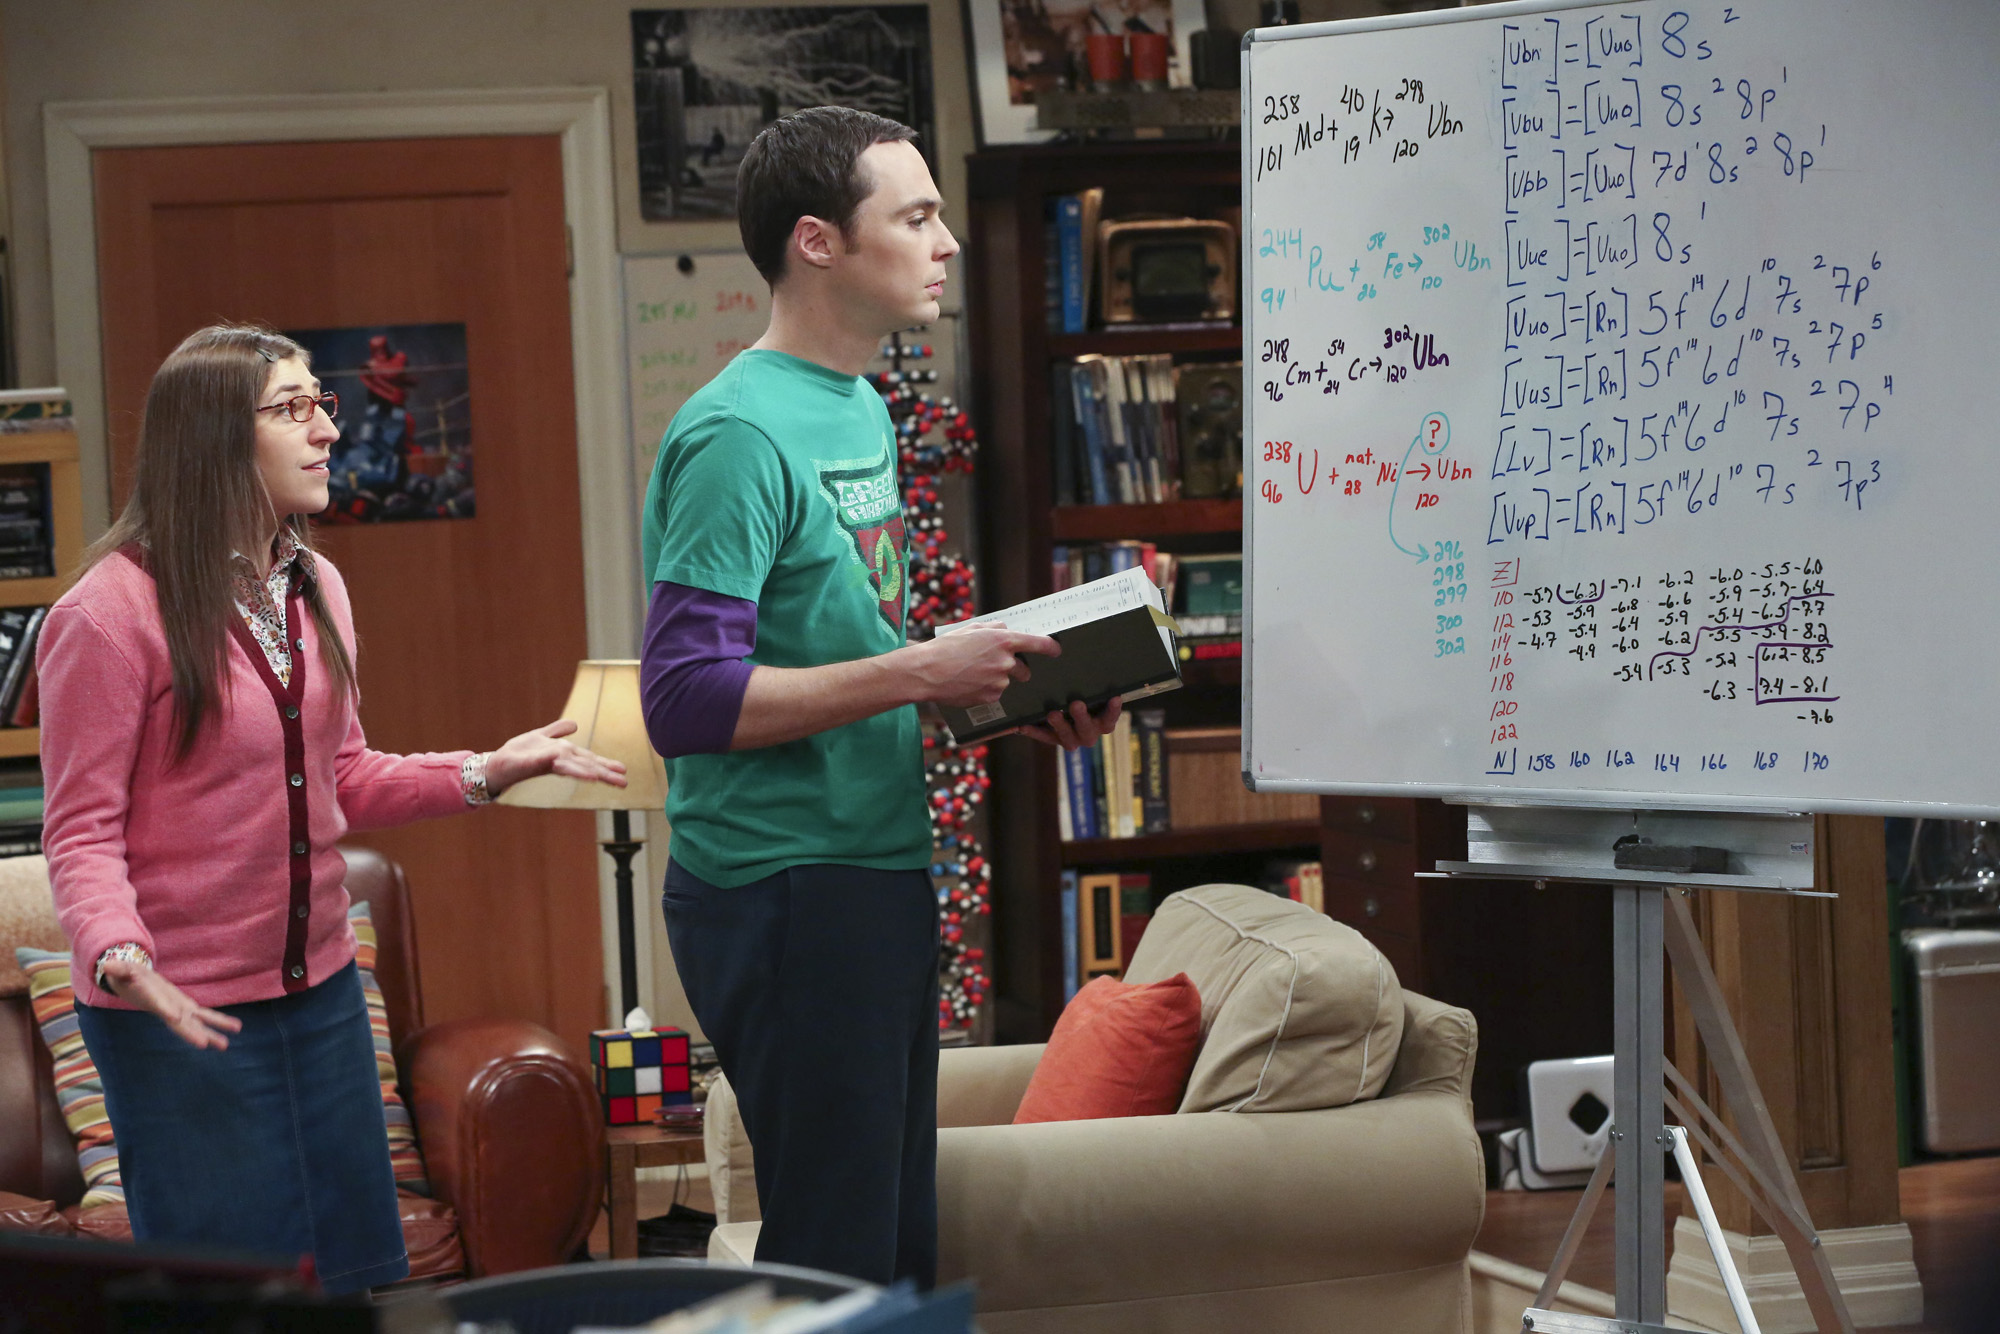 Shamy & the smartboard in